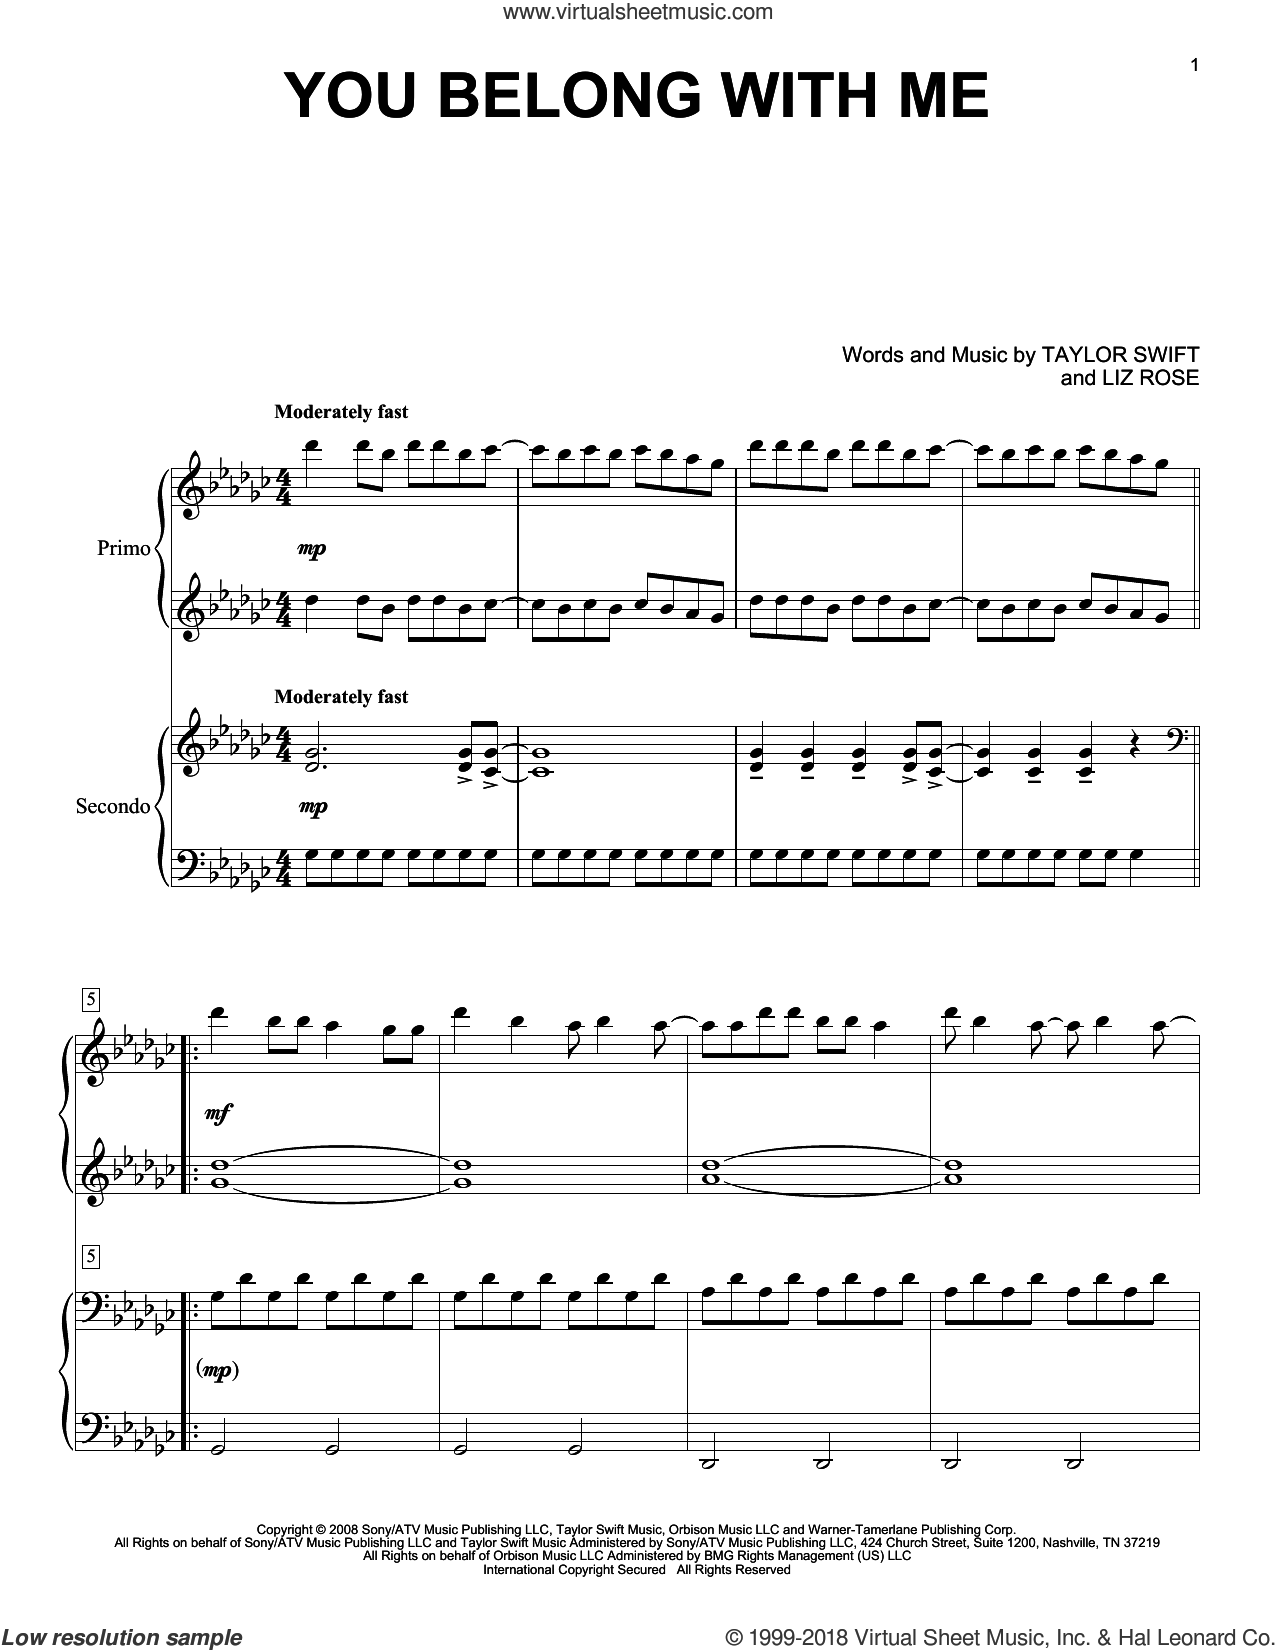 You Belong With Me sheet music for piano four hands by Taylor Swift and Liz Rose, intermediate skill level